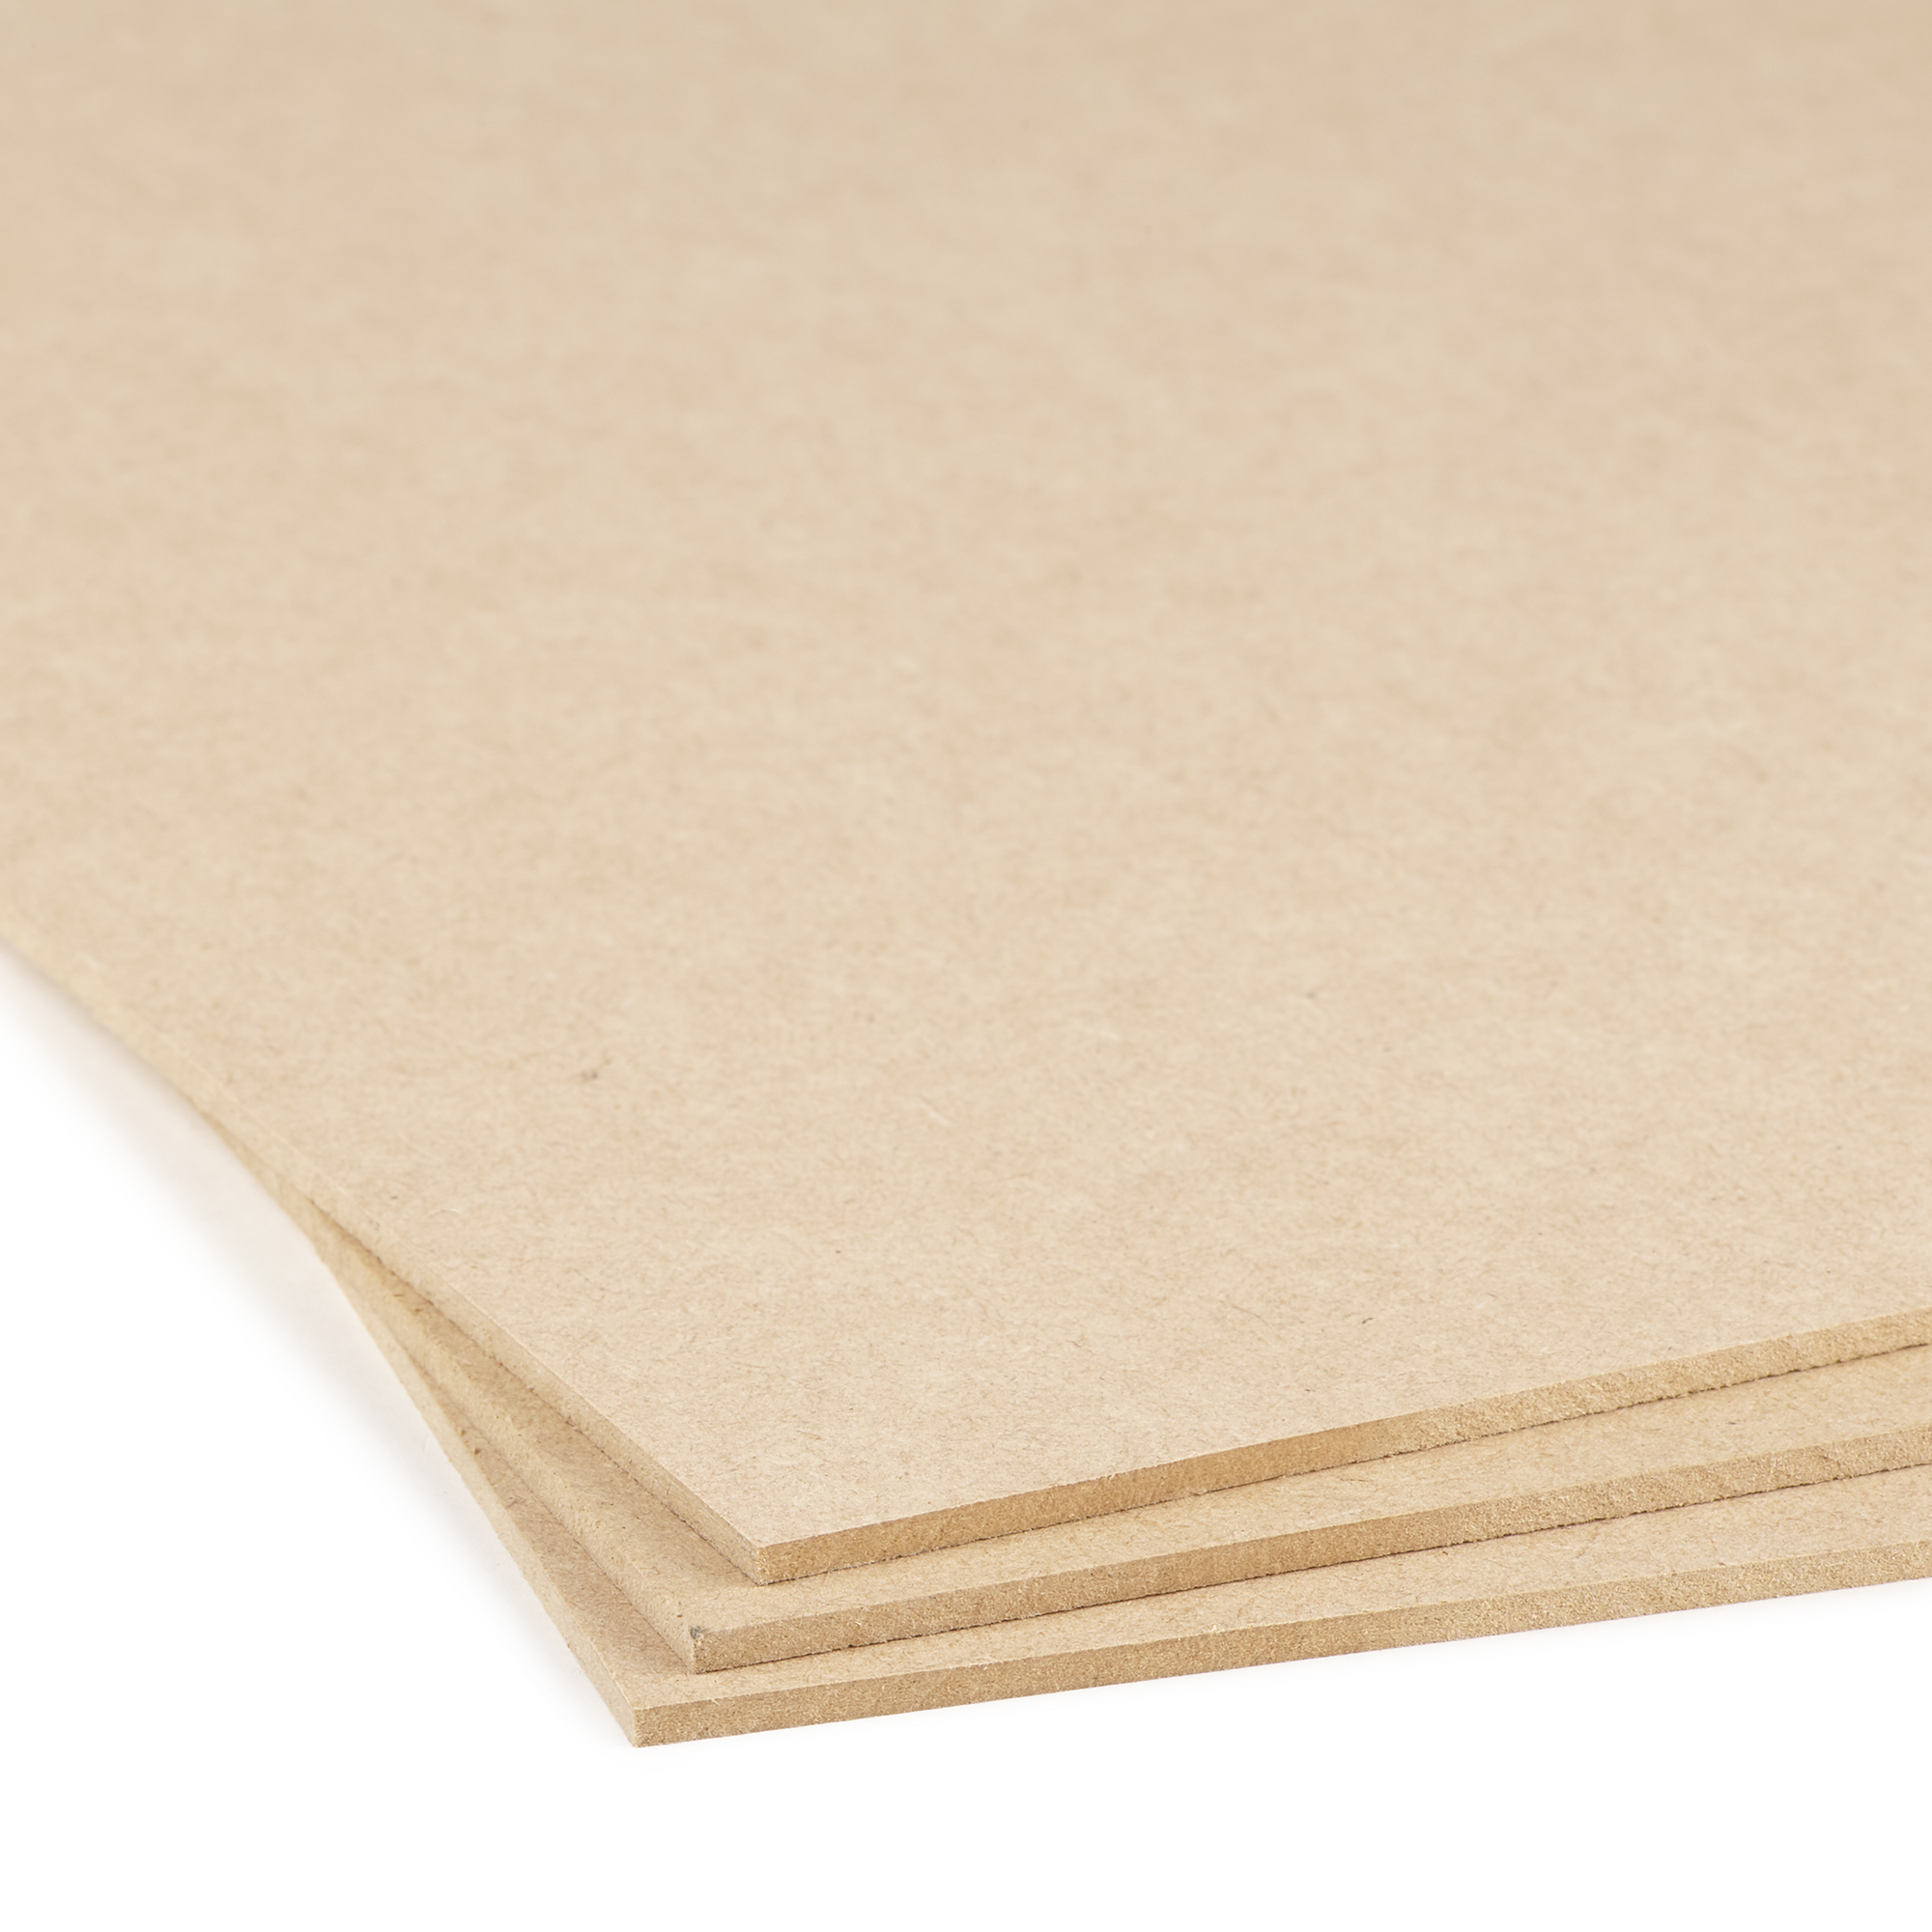 Pack Of Mdf Wood 3mm He48236032 Hope Education